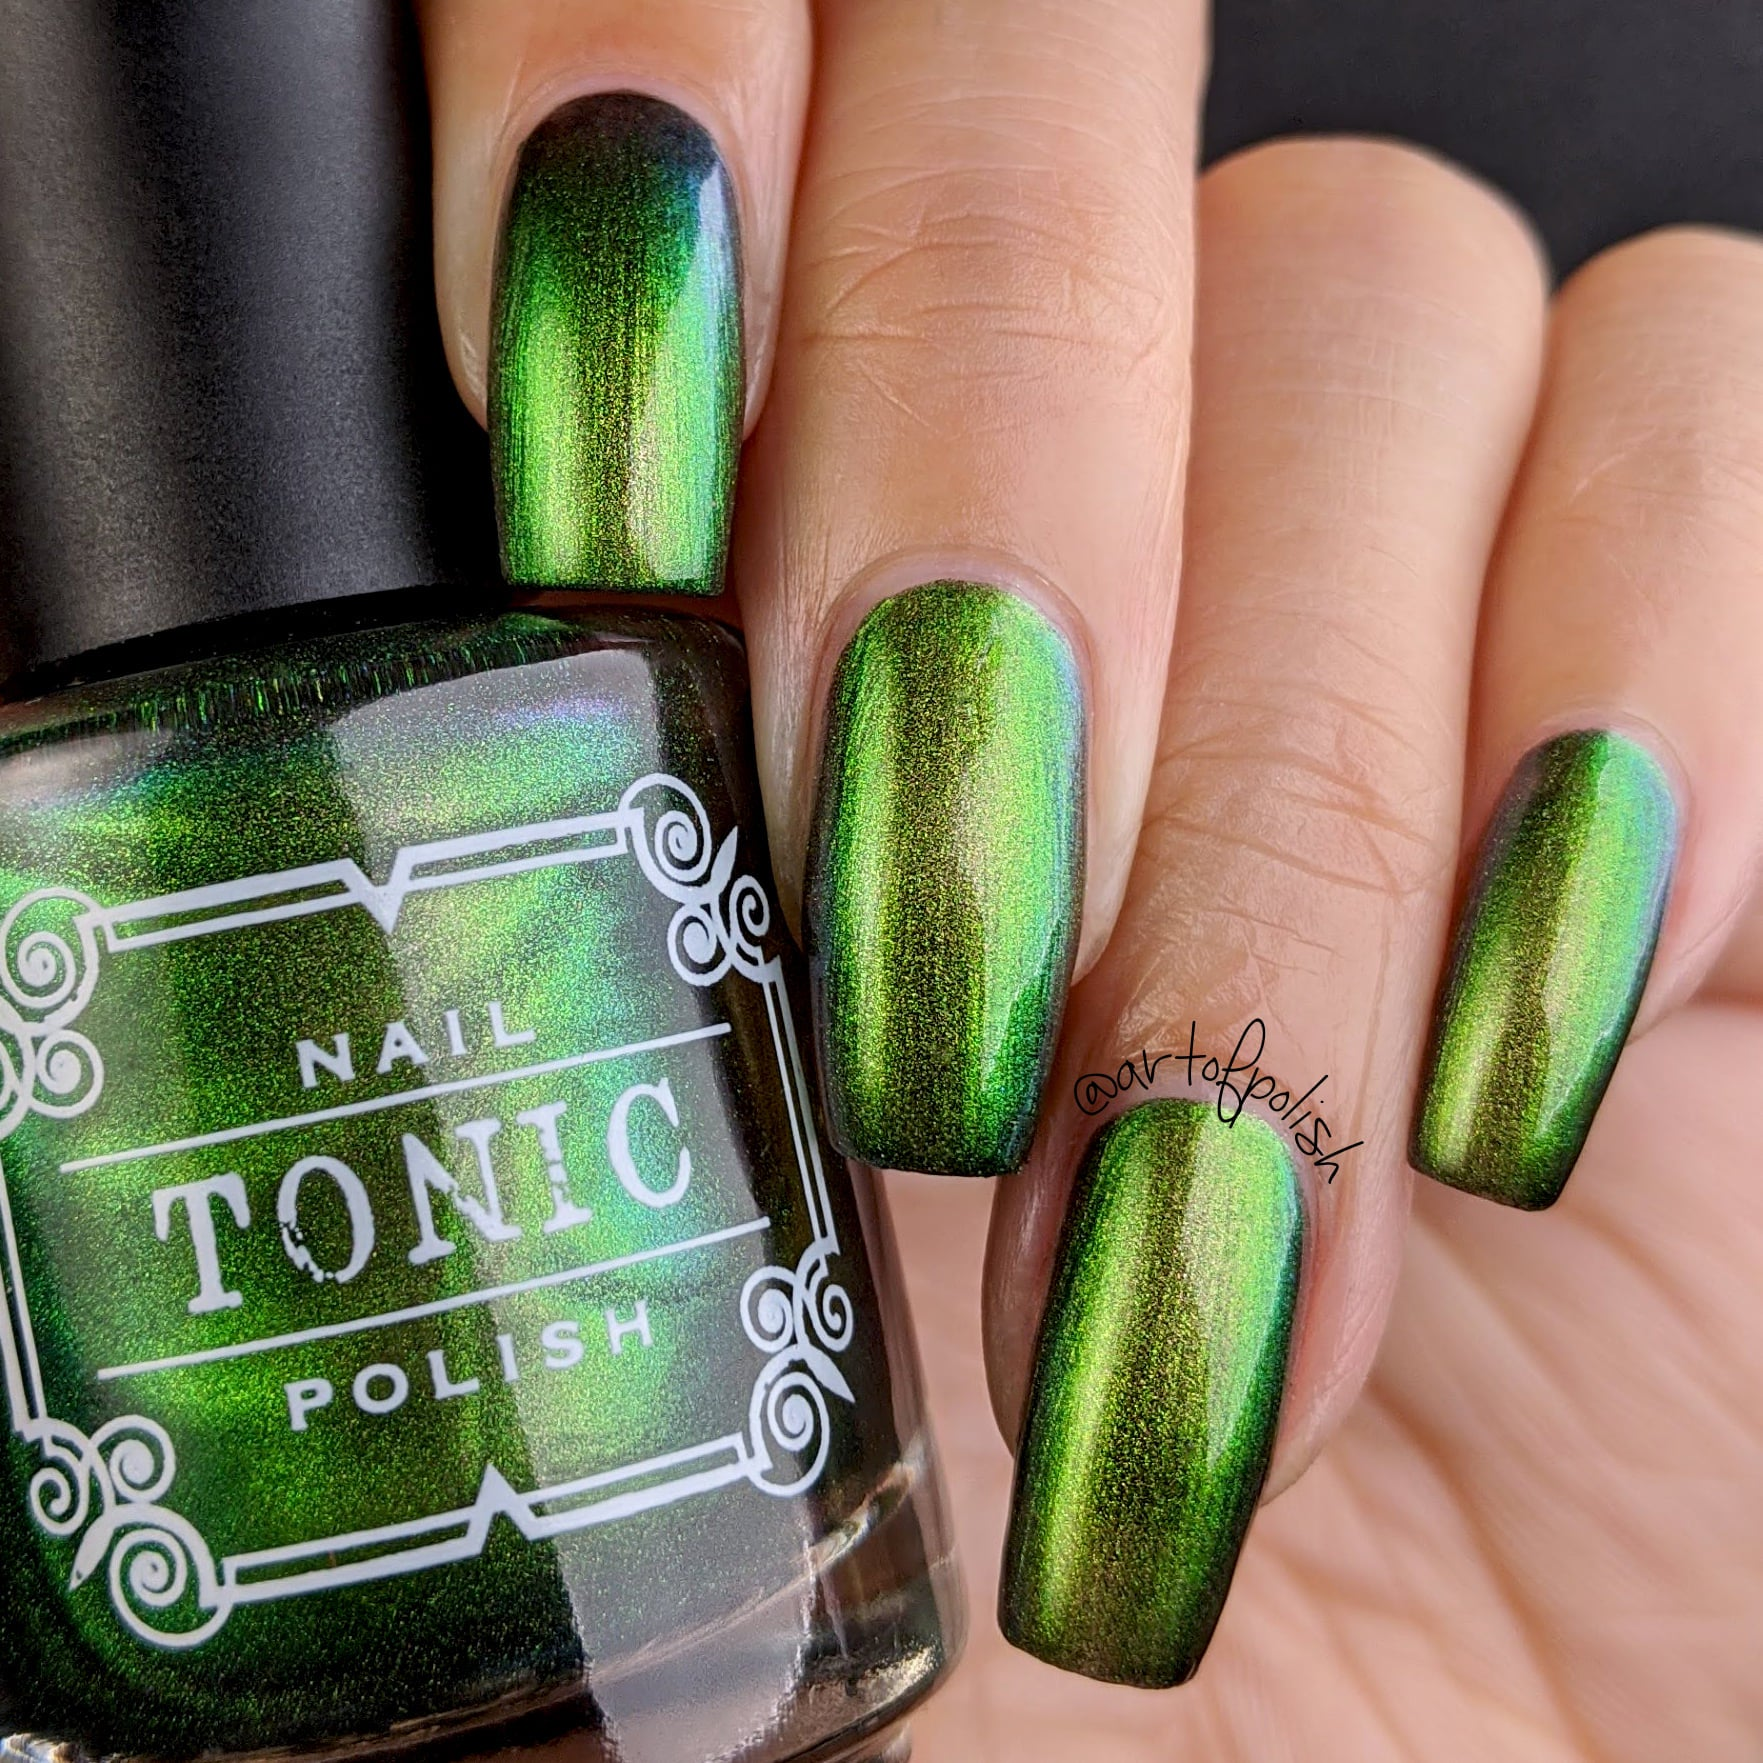 Tonic Polish - Puca Parade